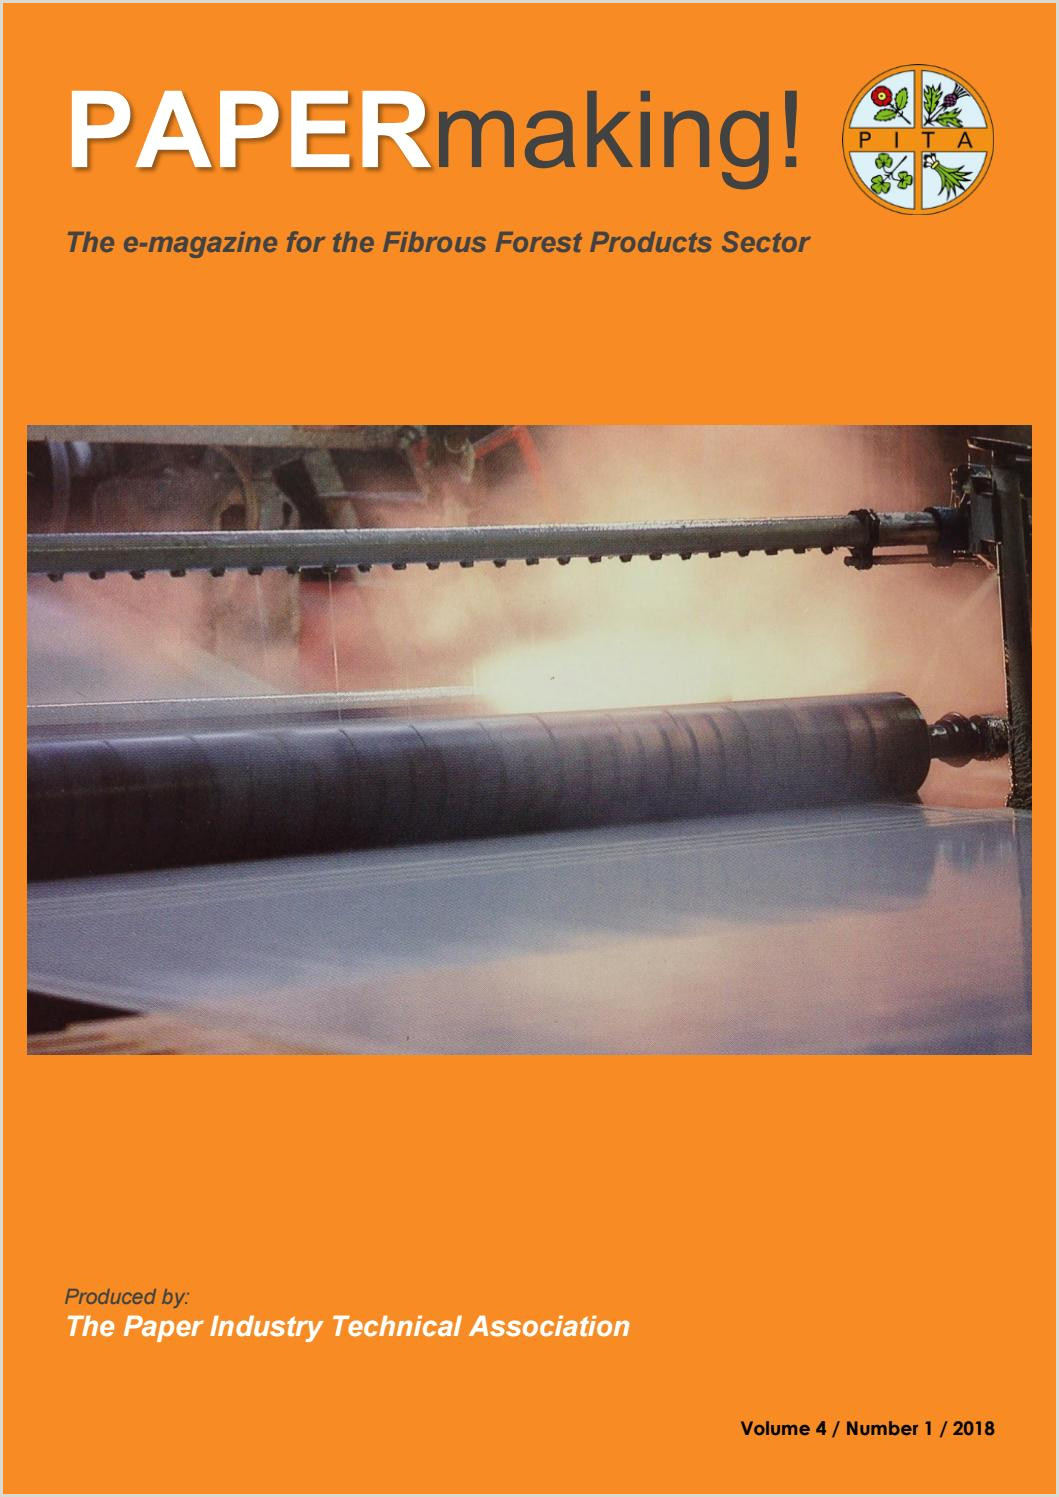 Retractable Displays Roll Ups Papermaking Vol 4 No 1 2018 By Pita Issuu